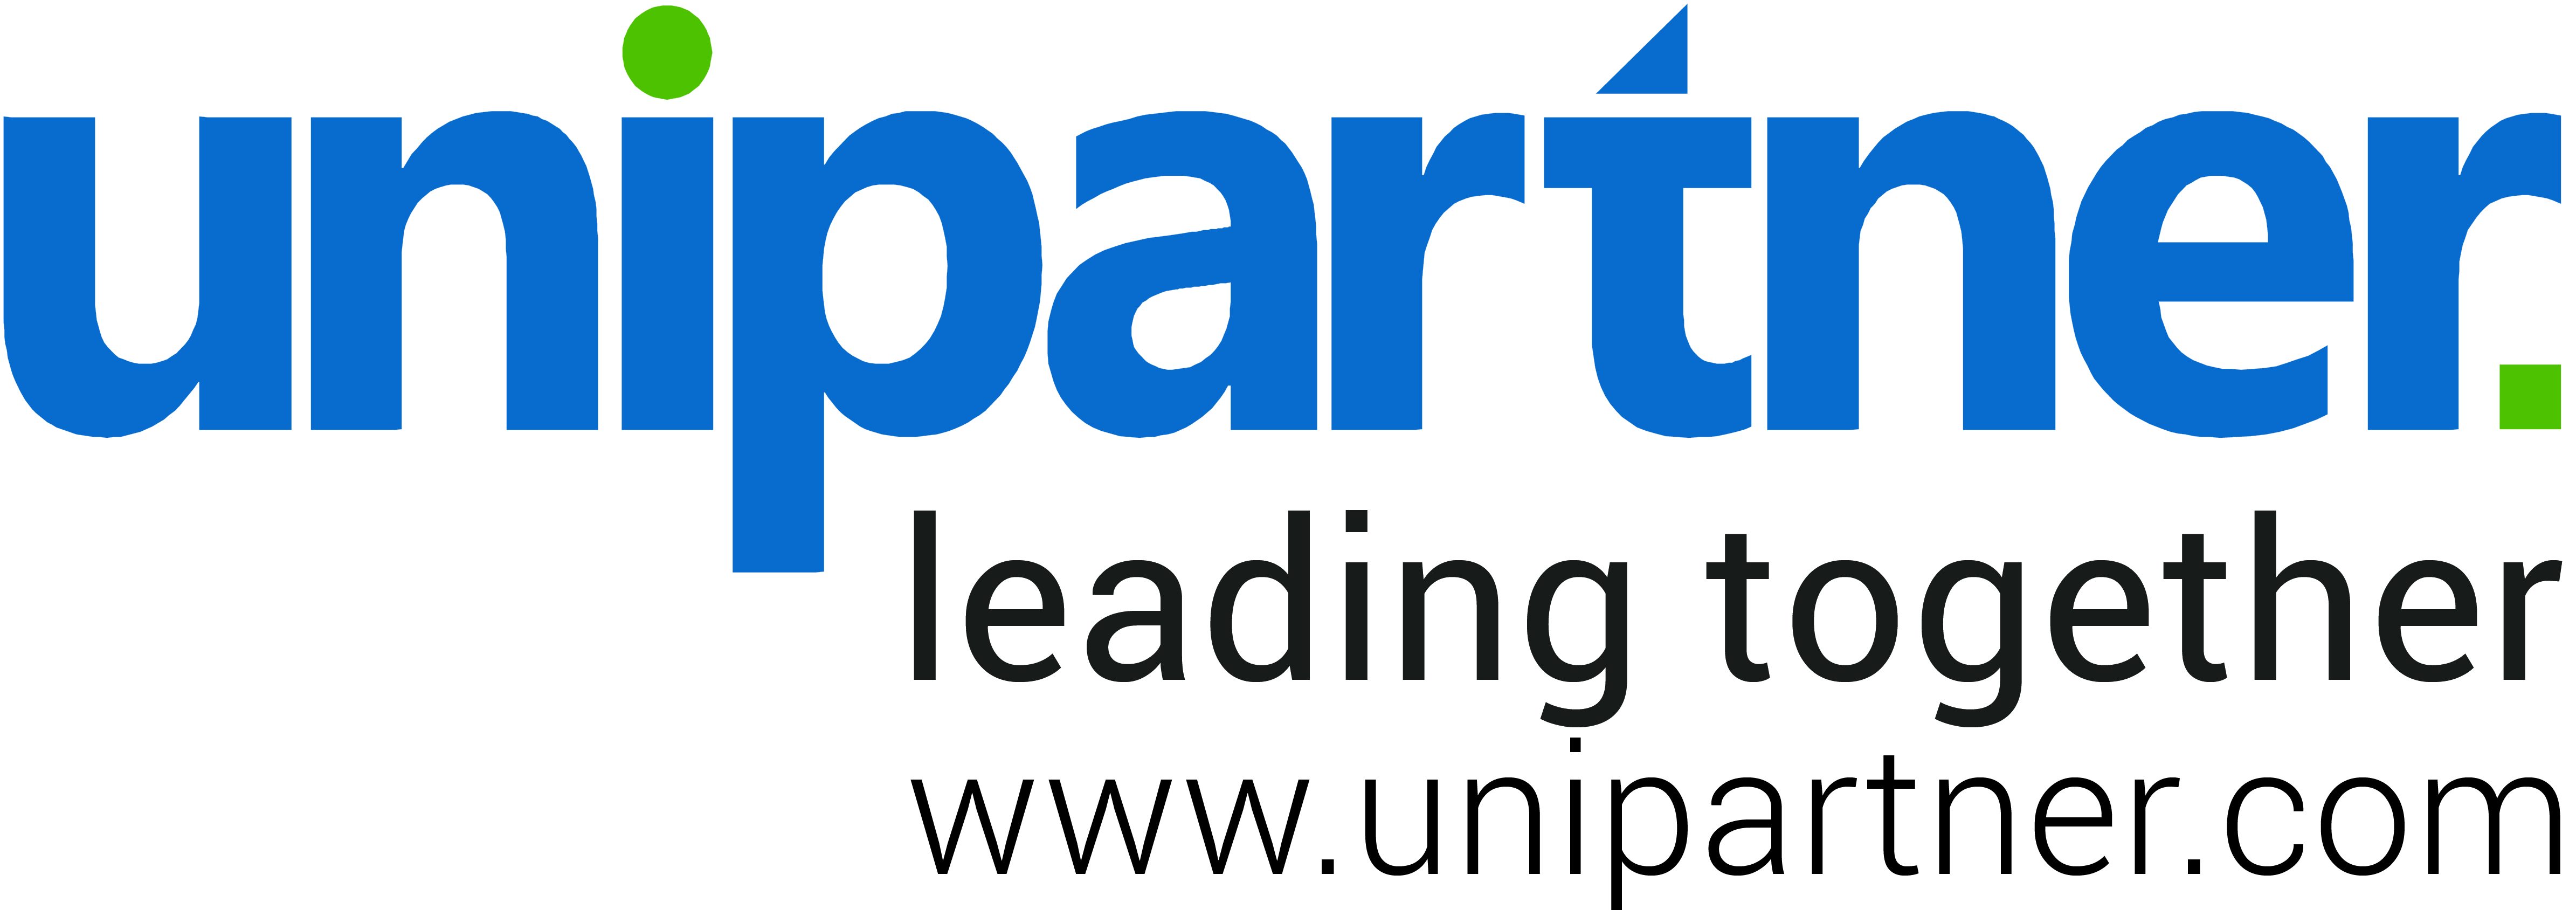 logo unipartner